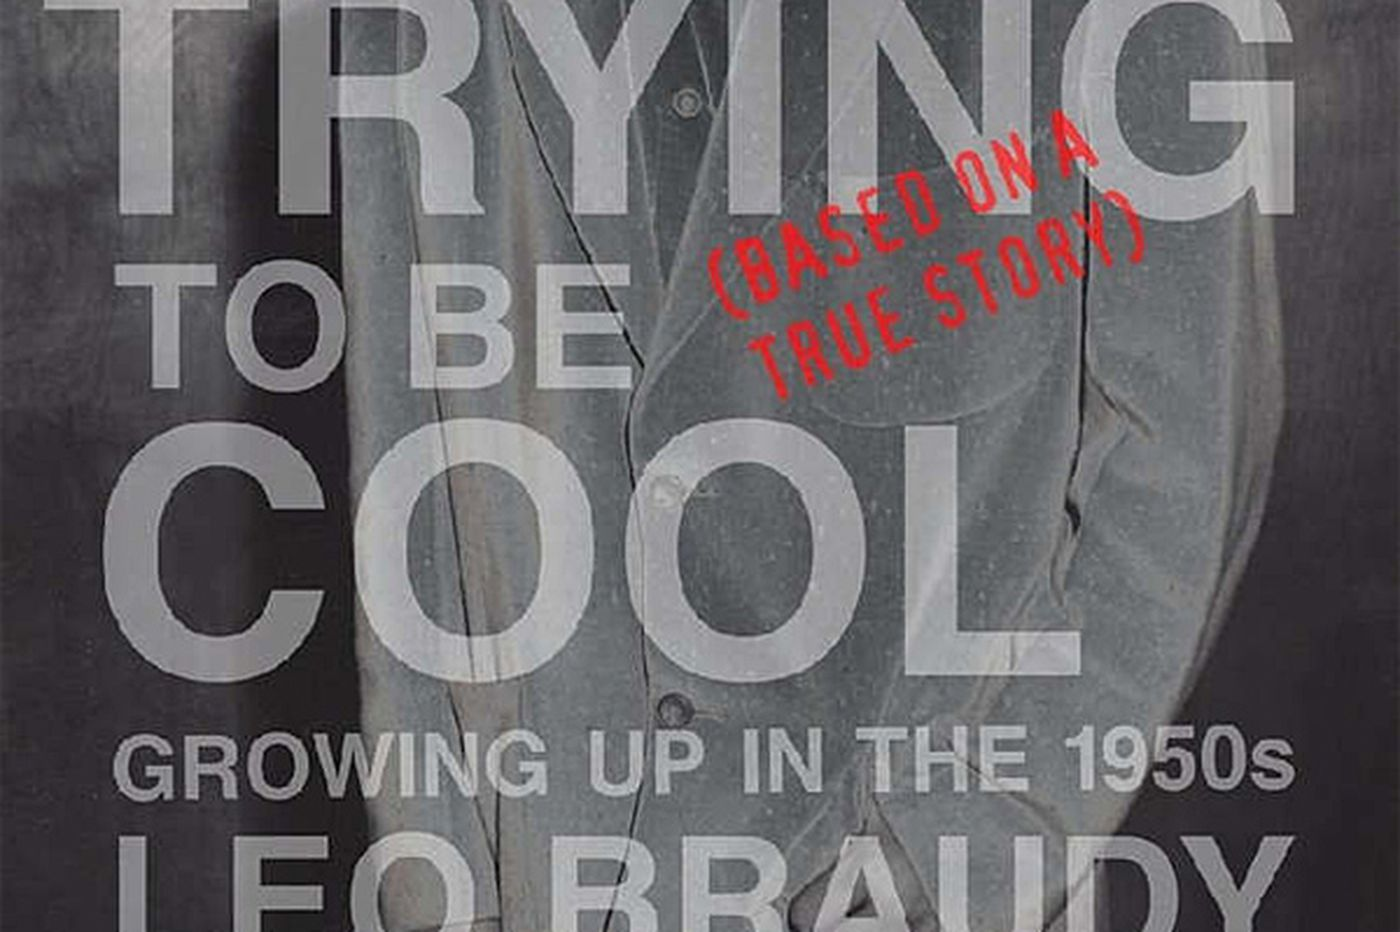 Leo Braudy's 'Trying to Be Cool' succeeds admirably